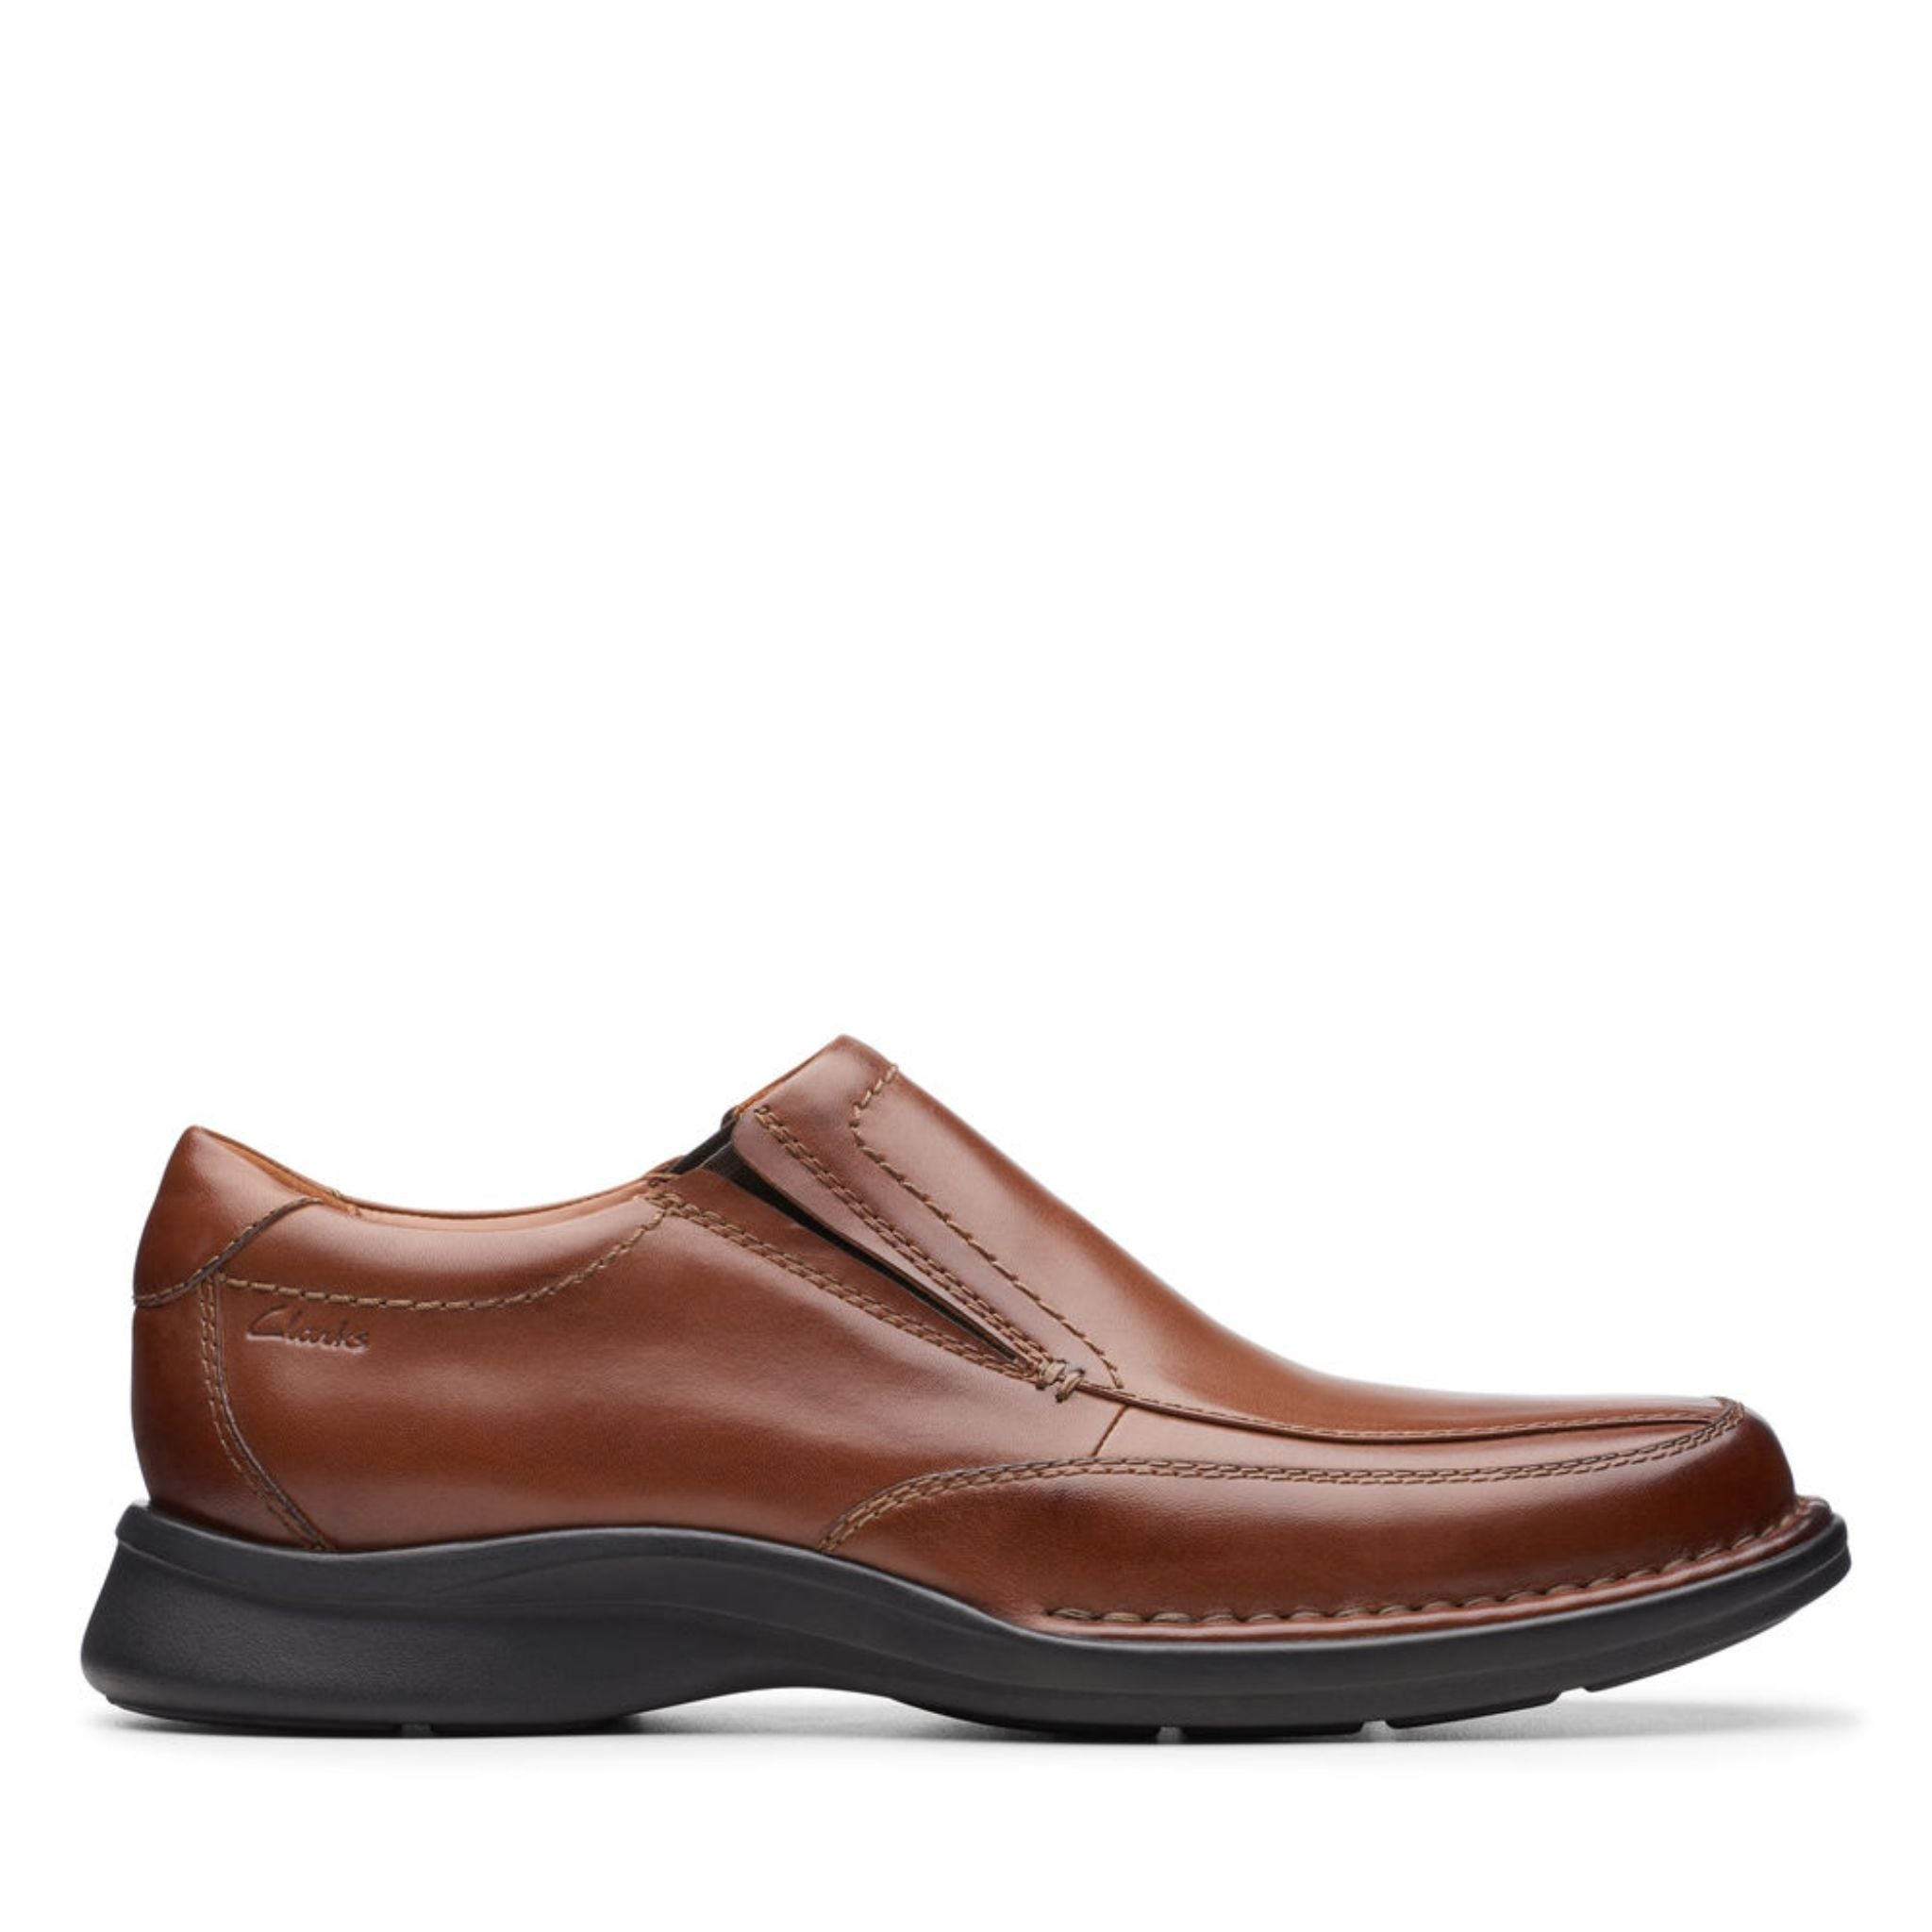 Clarks Kempton Free - Tan Leather